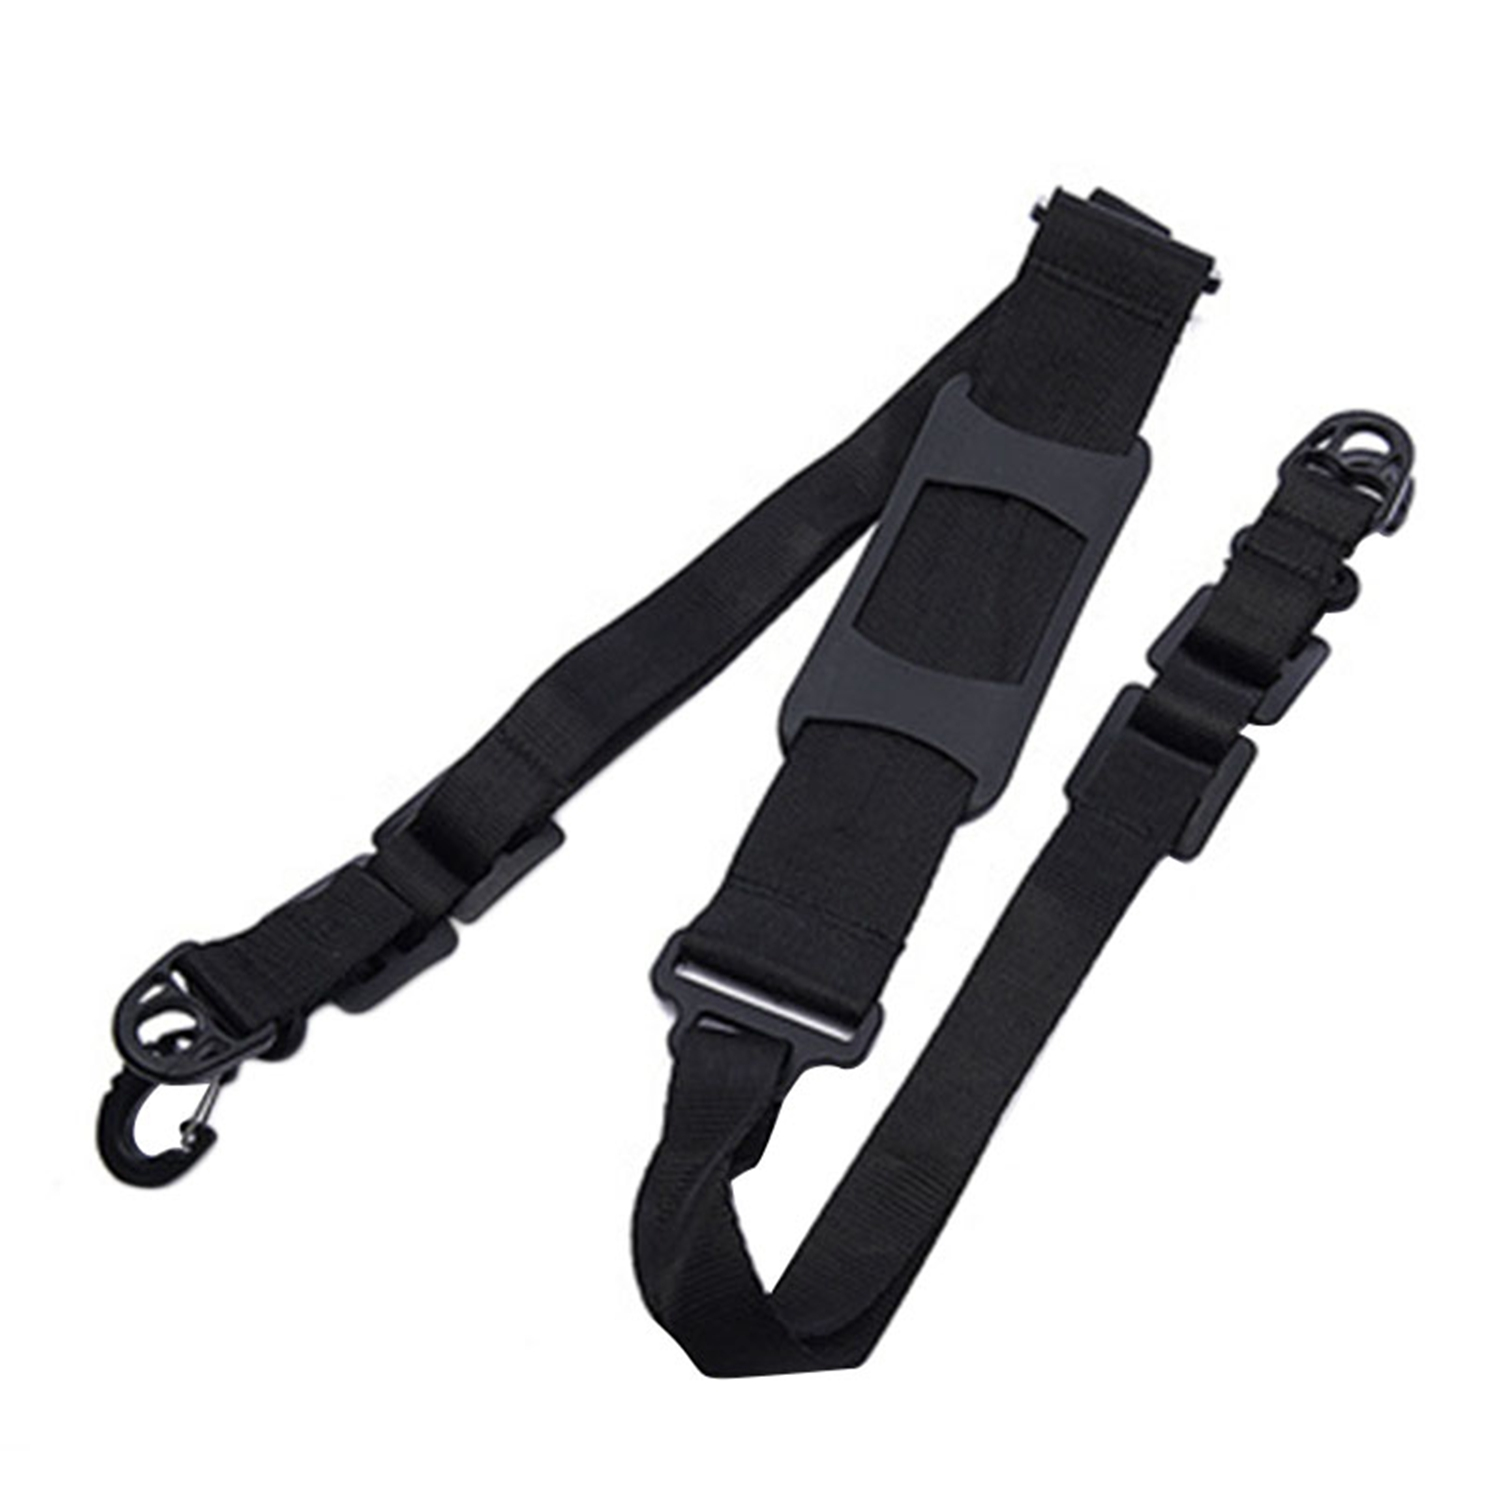 Hand Carrying Handle Shoulder Strap Belt For Xiaomi Mijia M365 Electric Scooter